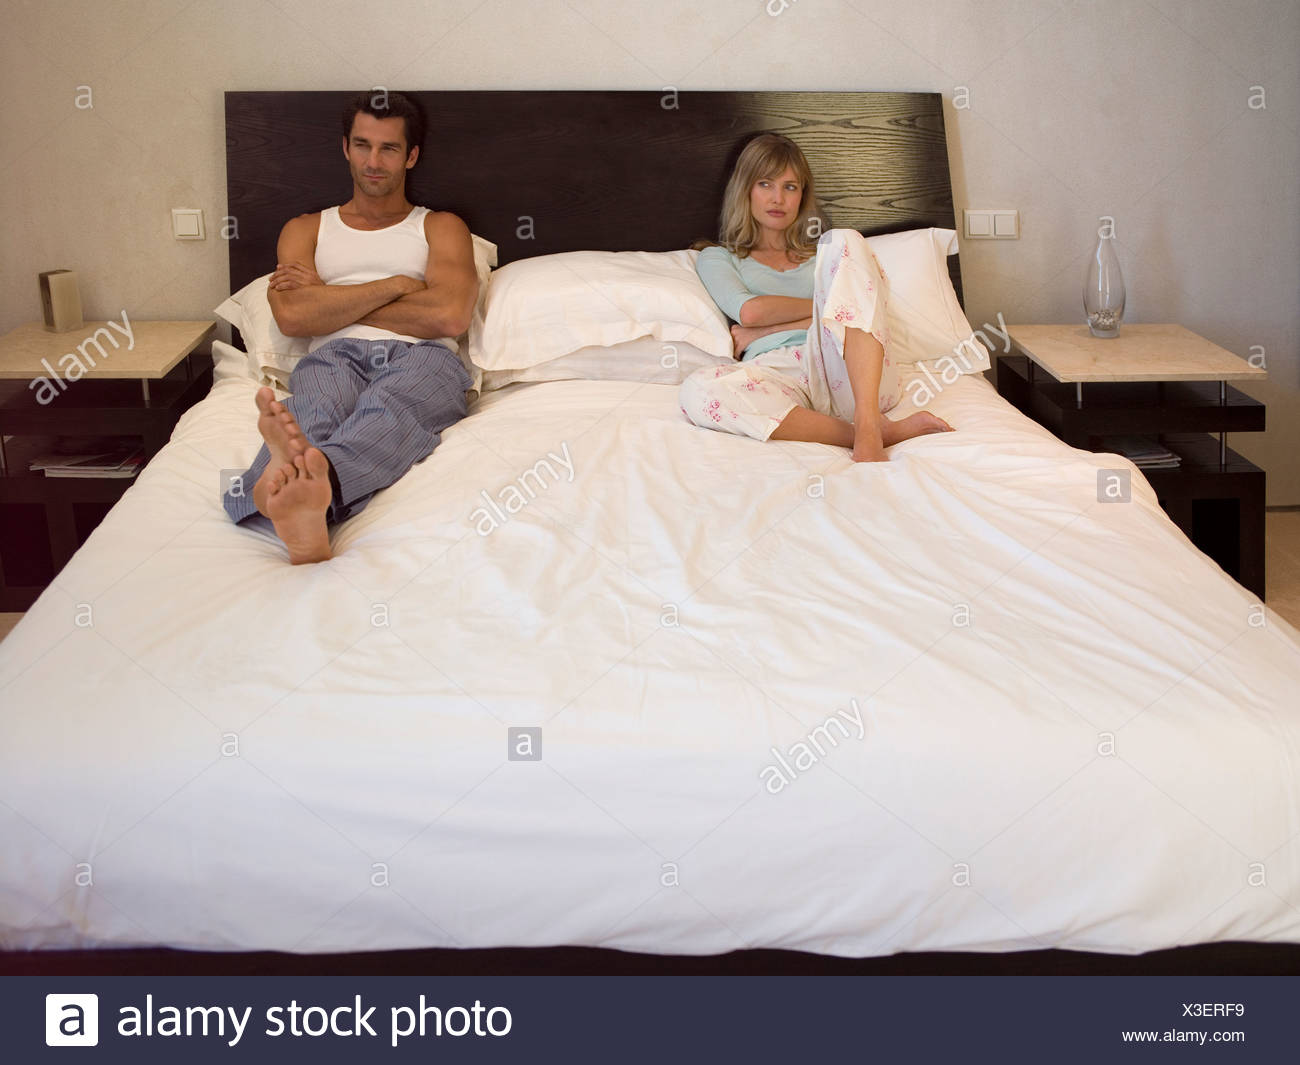 Couple sitting on the bed - Stock Image